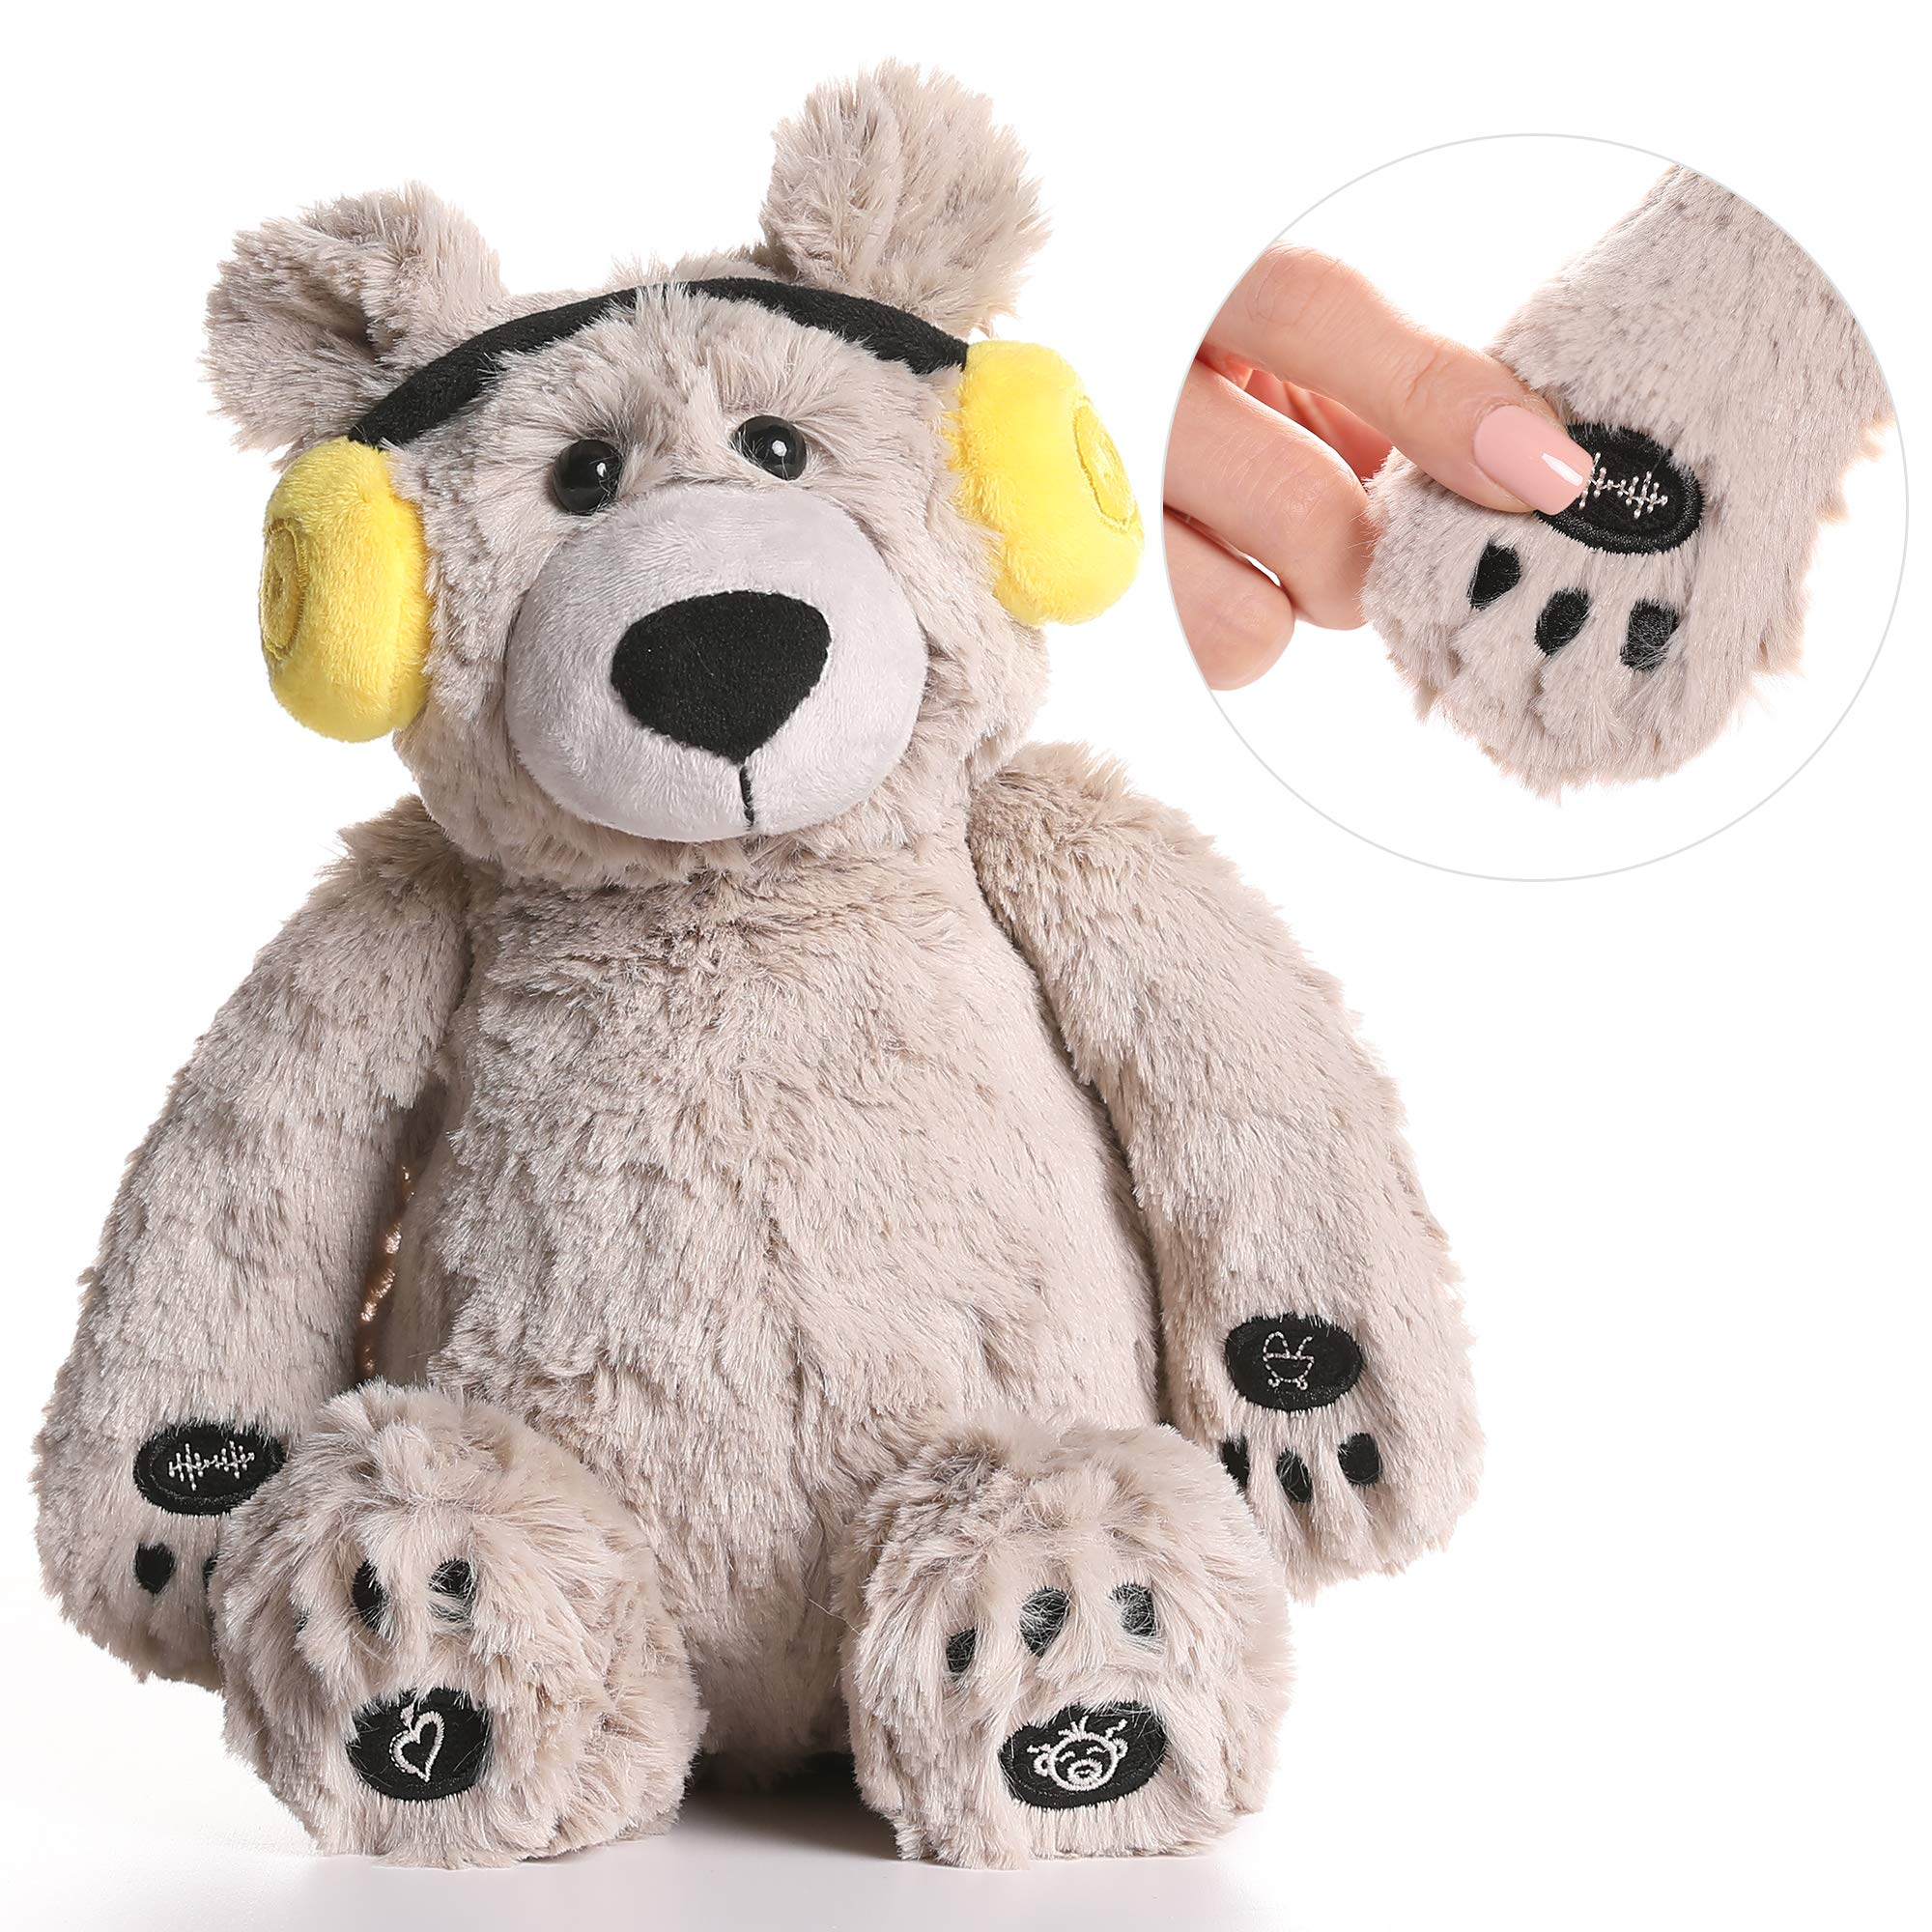 Lulla Bear Shusher by Alex & Kate - White Noise, Lullabies, and Mom's Heartbeat Sounds - Nursery Décor & Portable Stuffed Animal Bear with Baby Sleep Soothing Sounds for Toddler Crib to Comfort